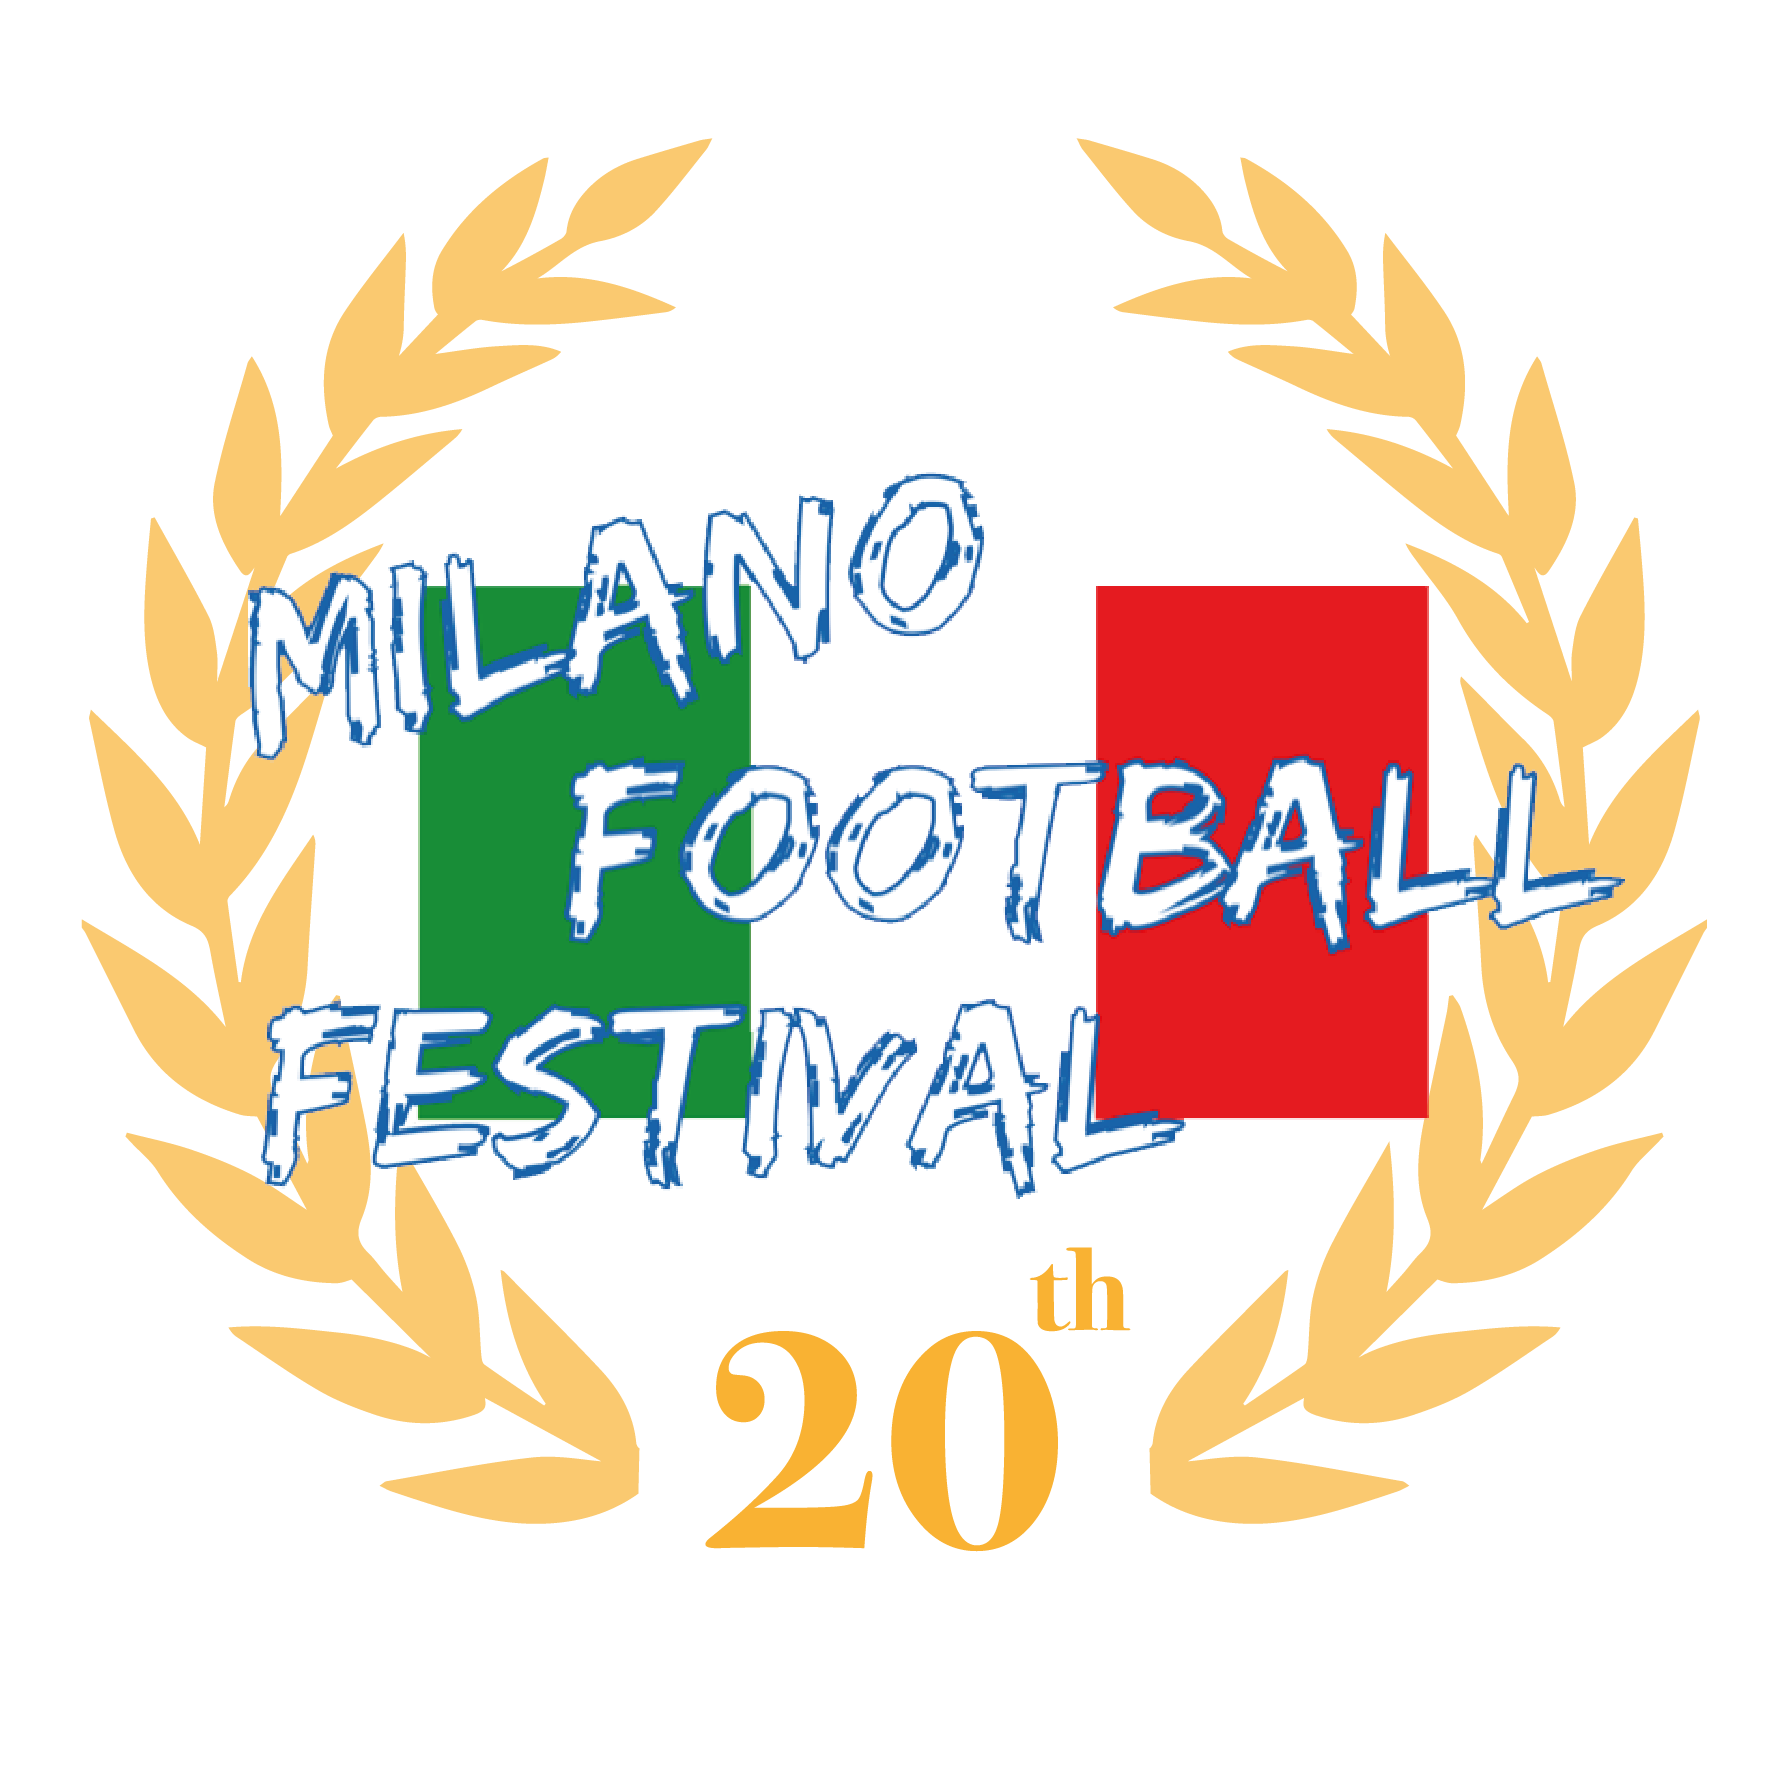 Milano Football Festival